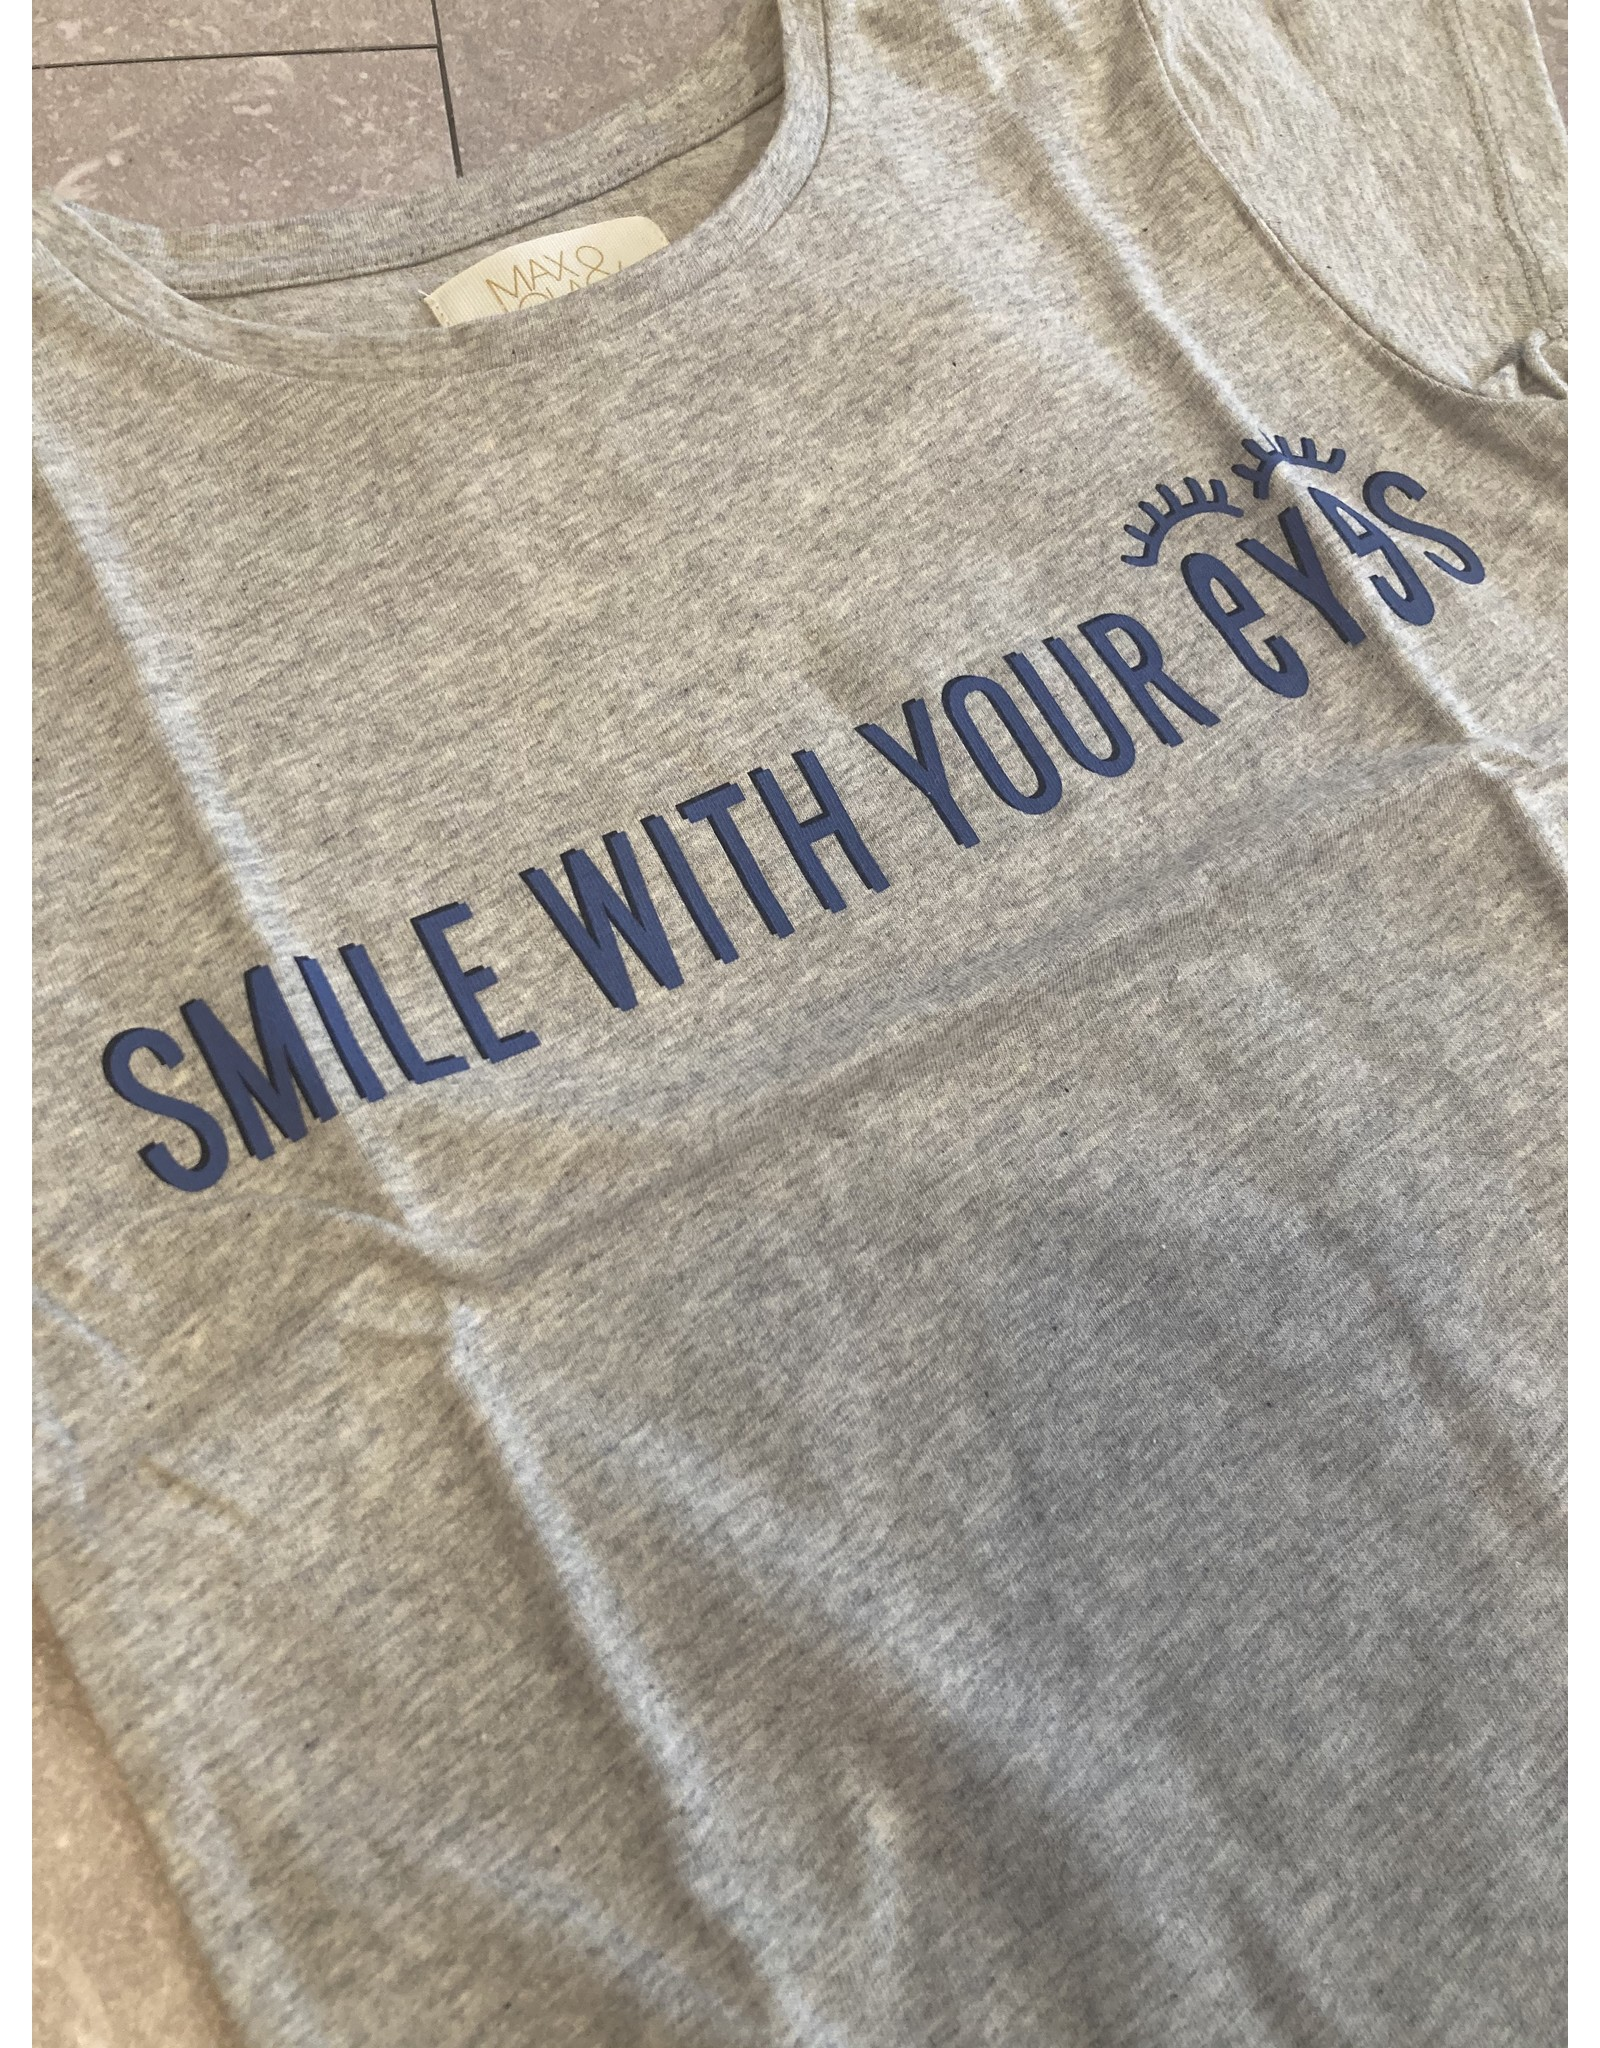 M&L SS21 Misti Smile t-shirt